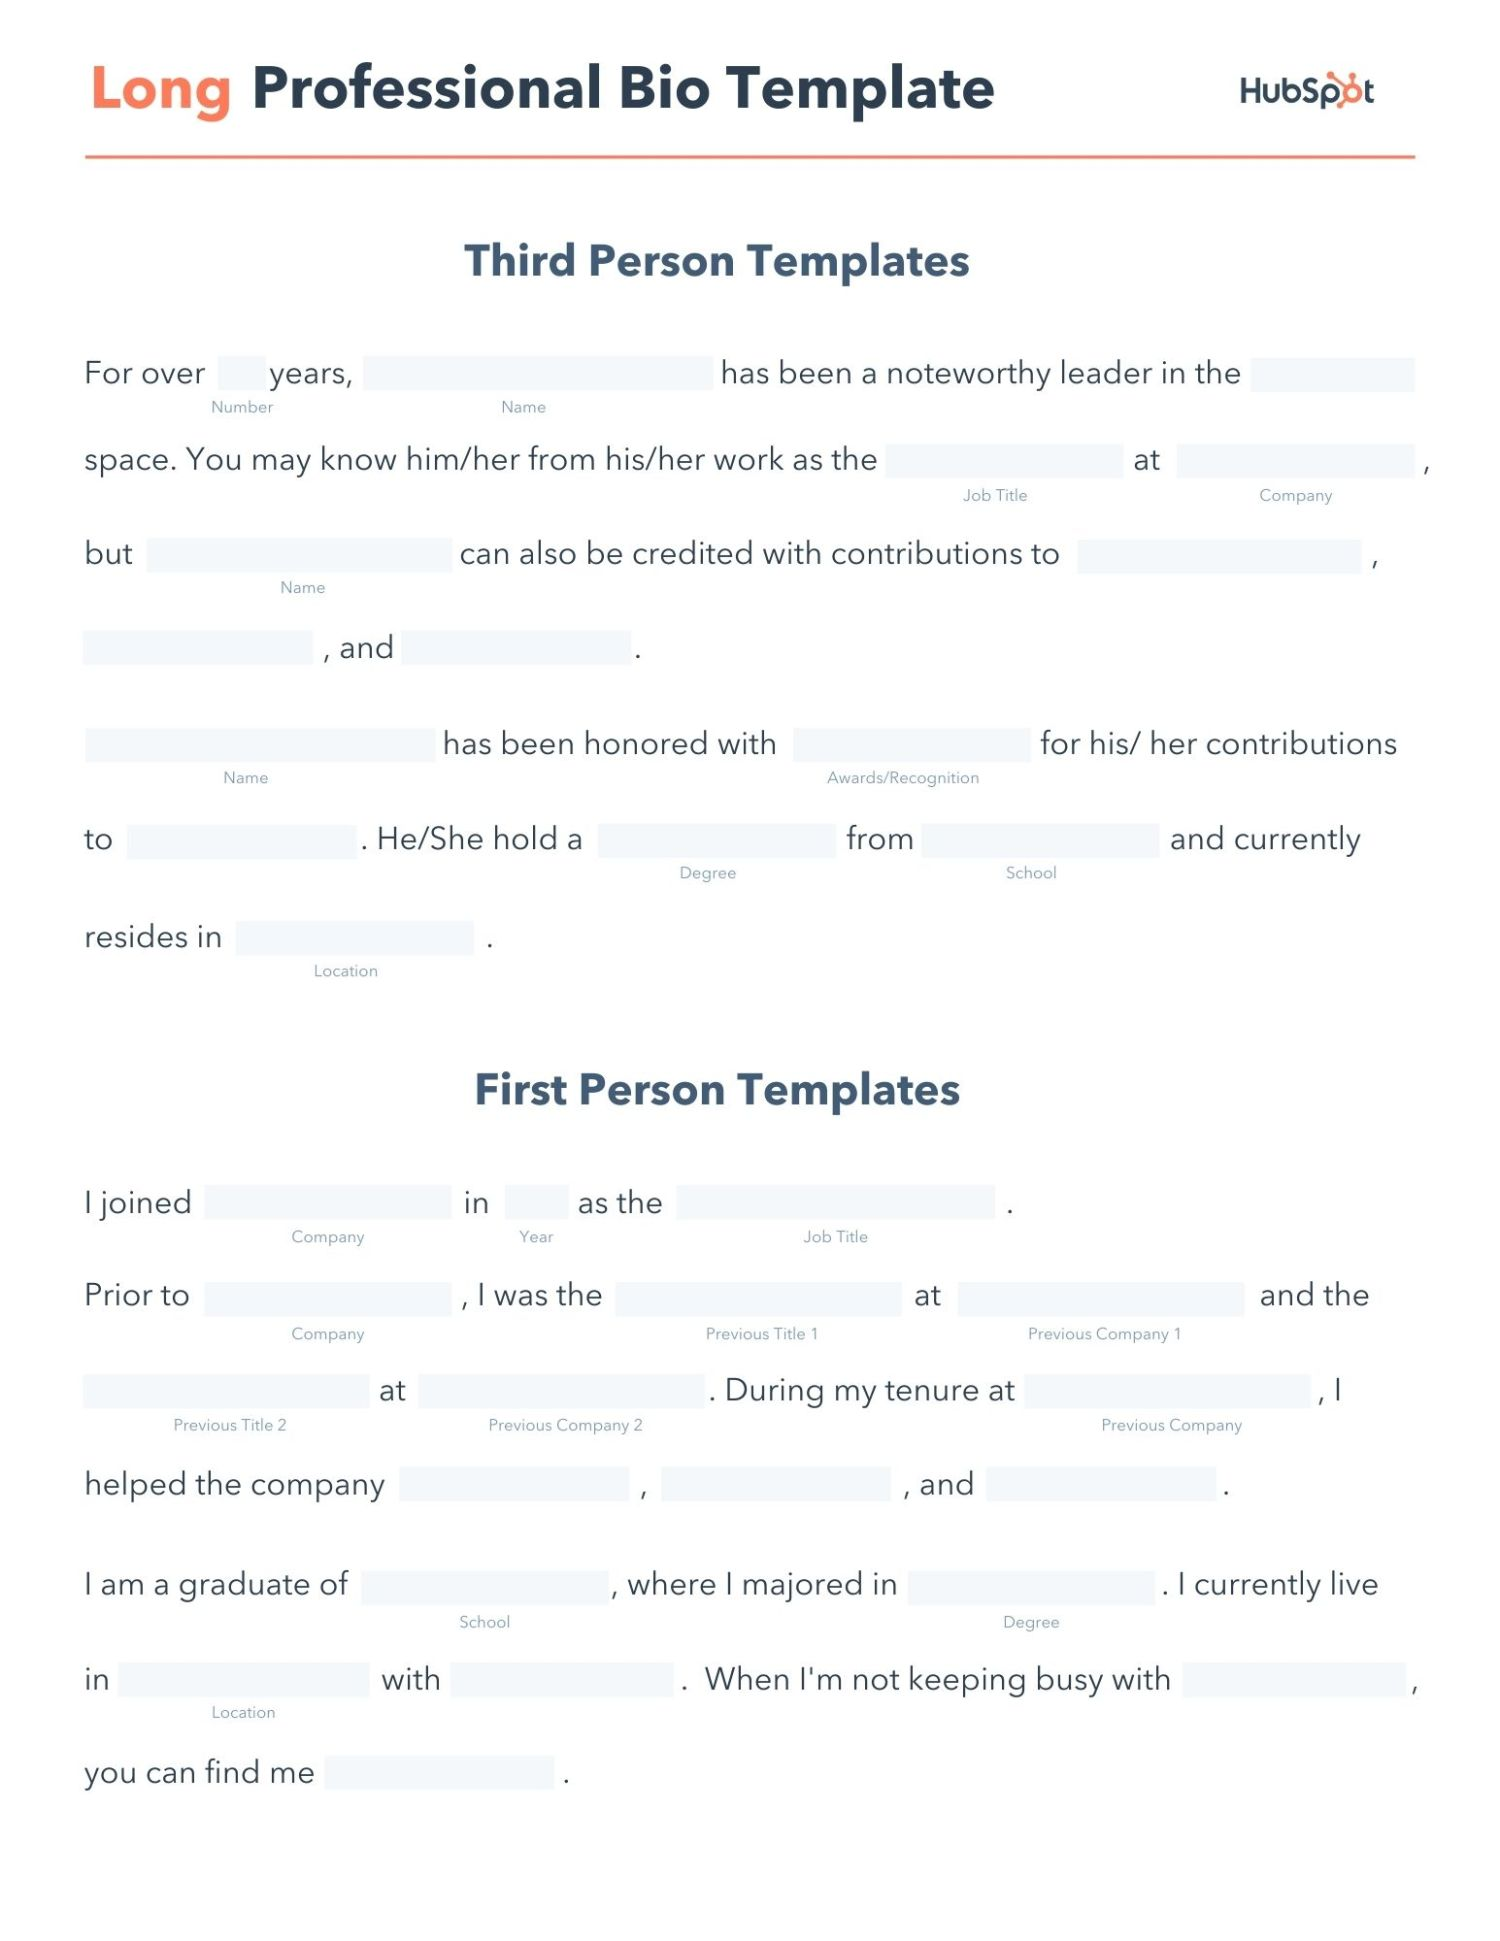 free editable long professional bio pdf template